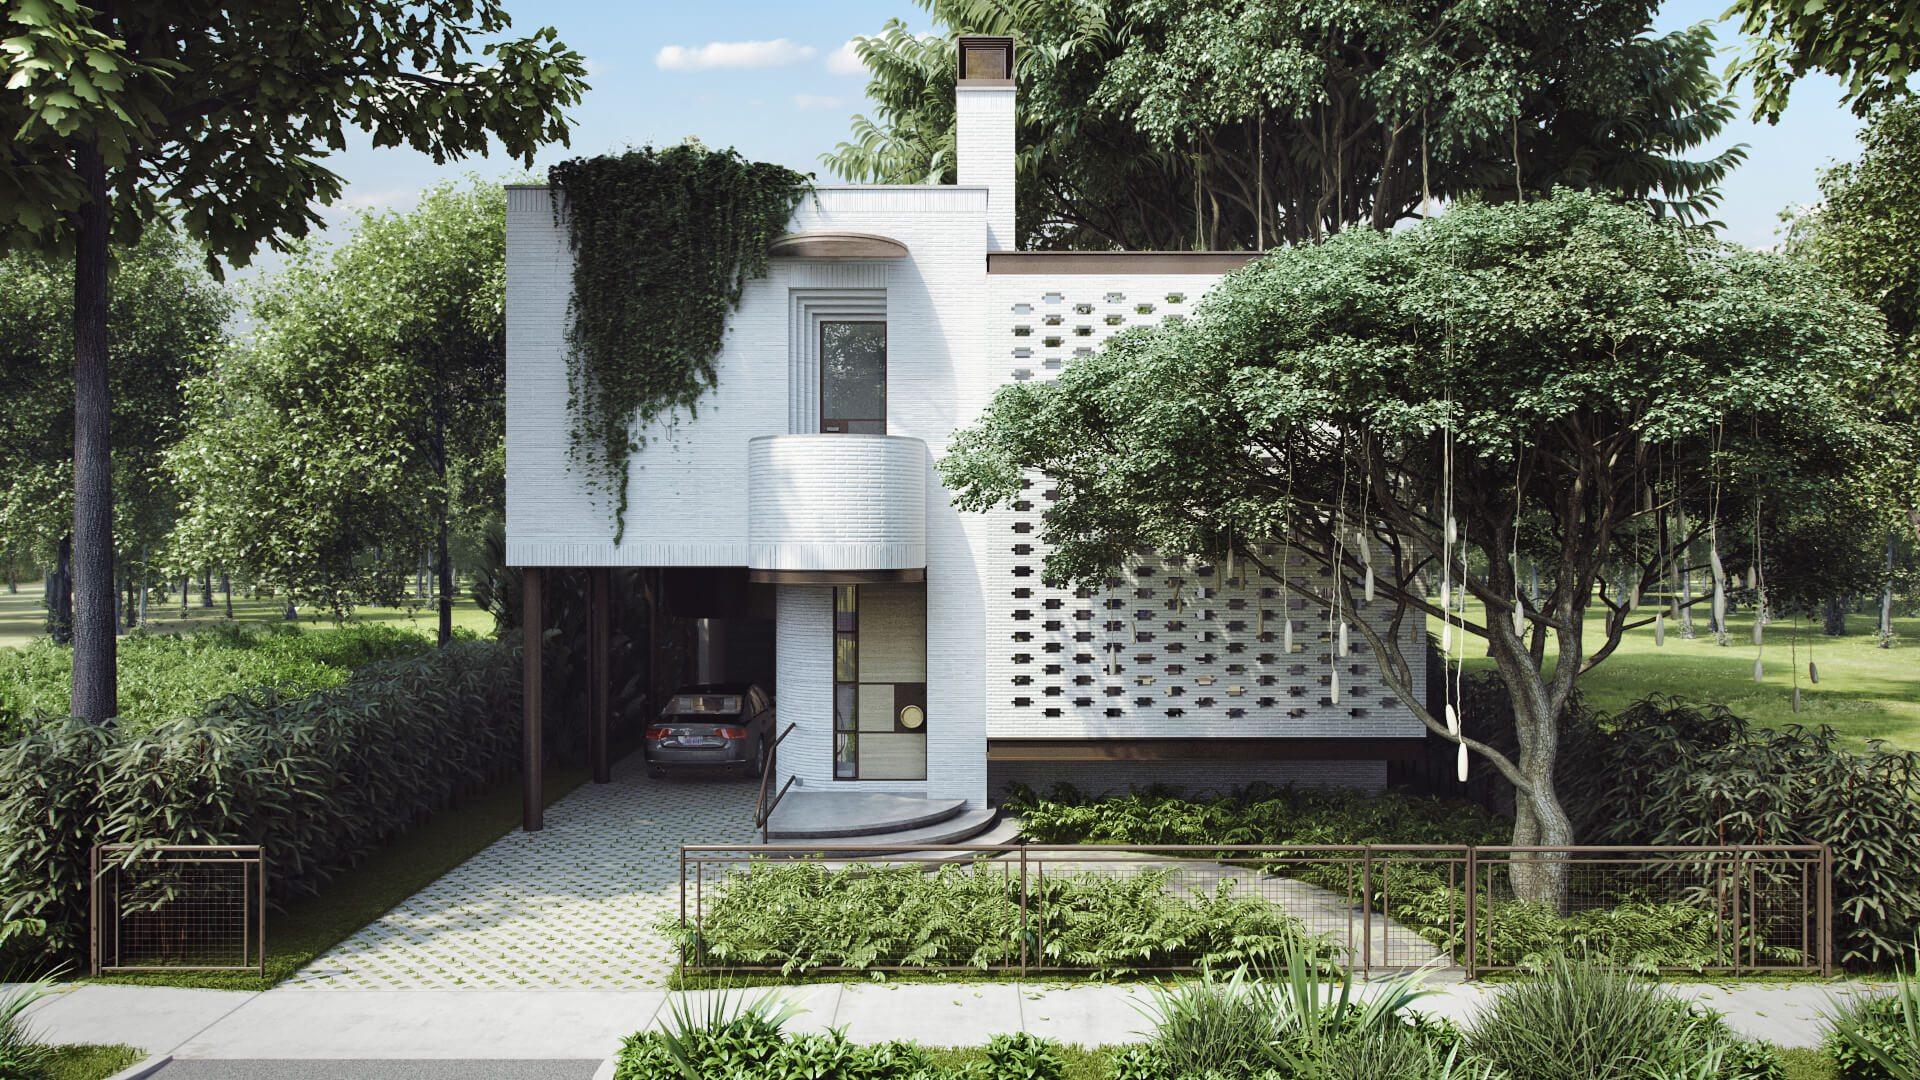 3D Exterior Visualization of a Suburban House